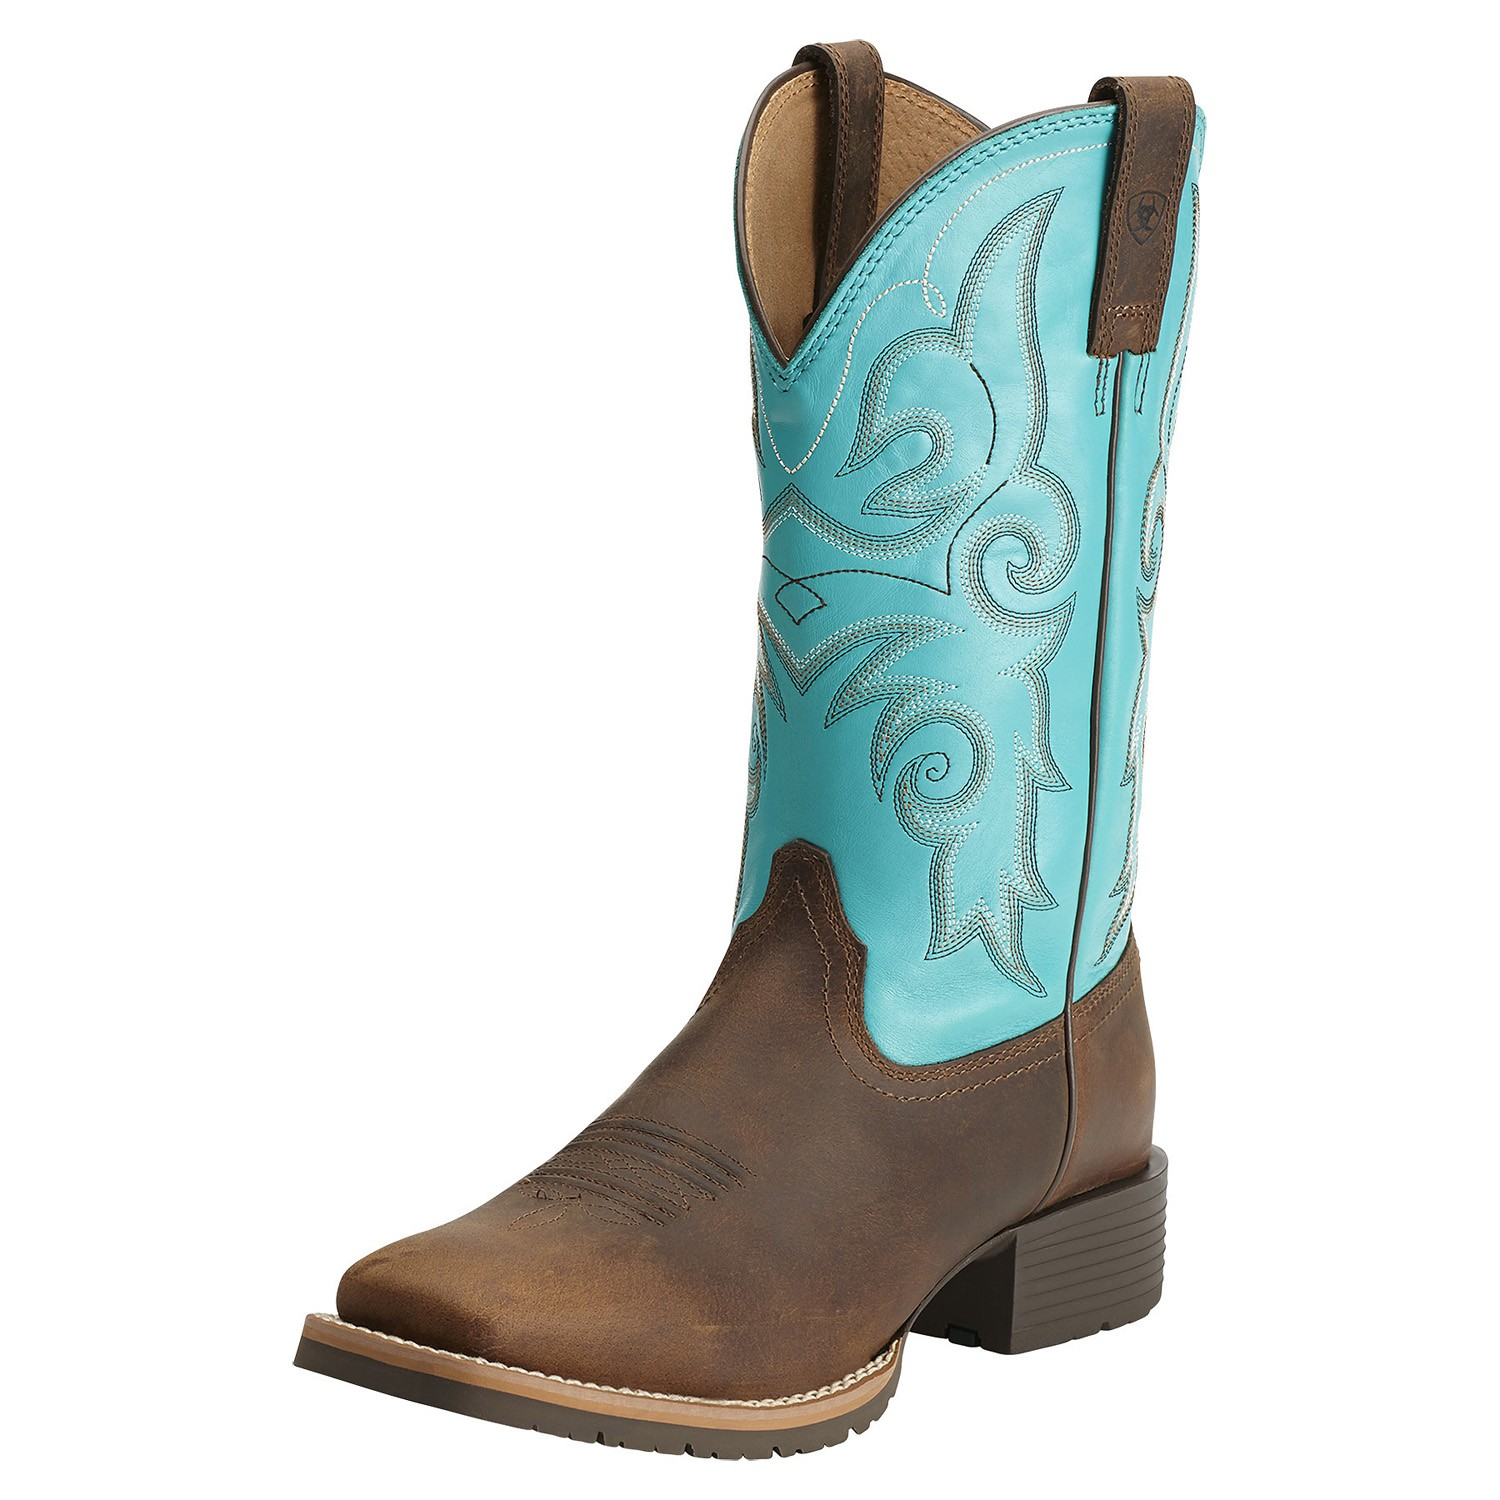 Cheapest Ariat Boots